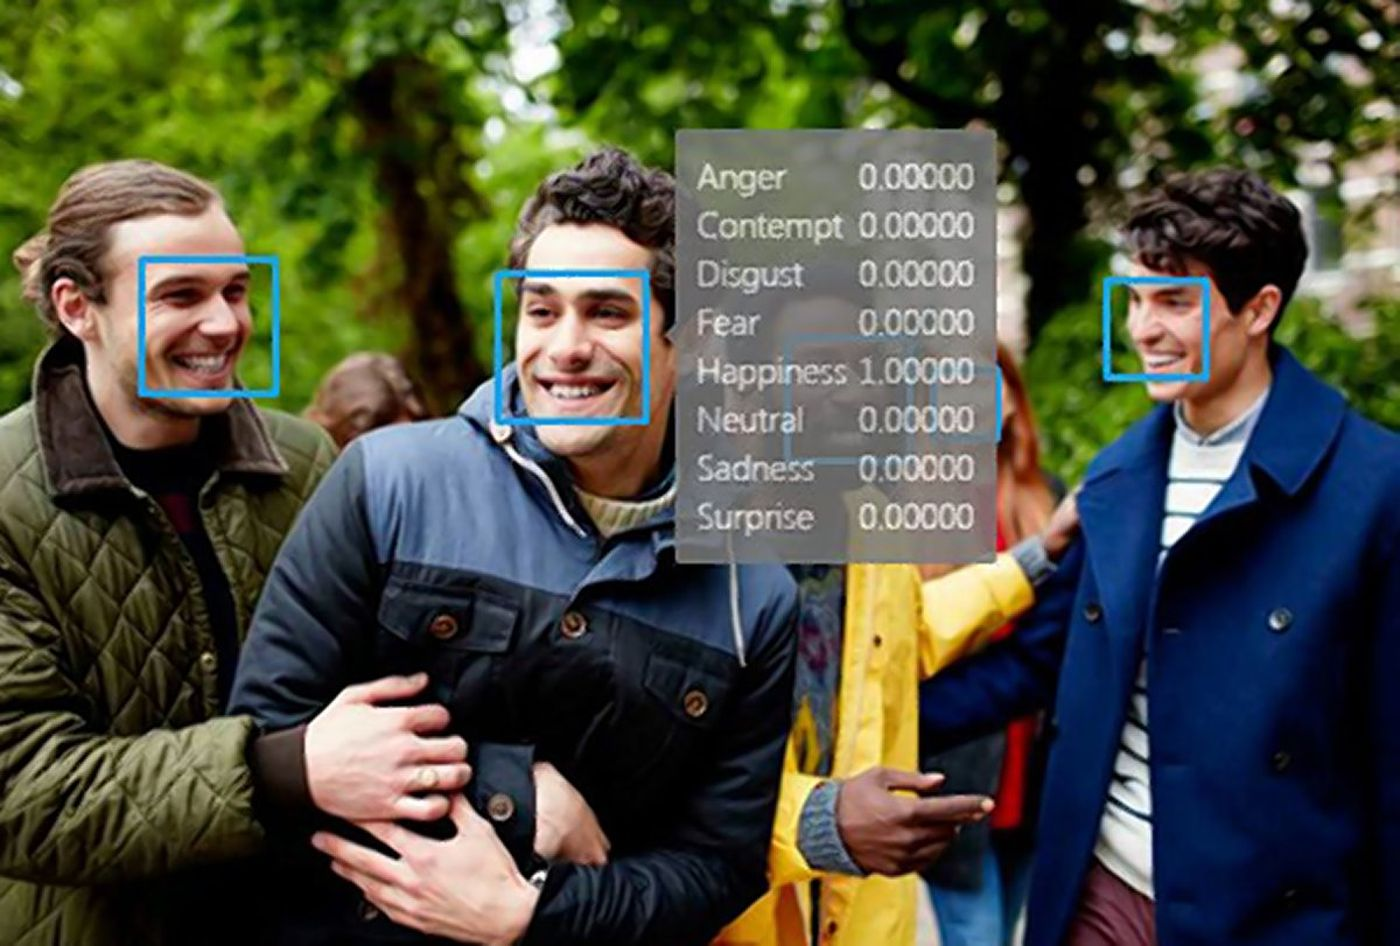 Microsoft president calls for regulations on facial recognition technology